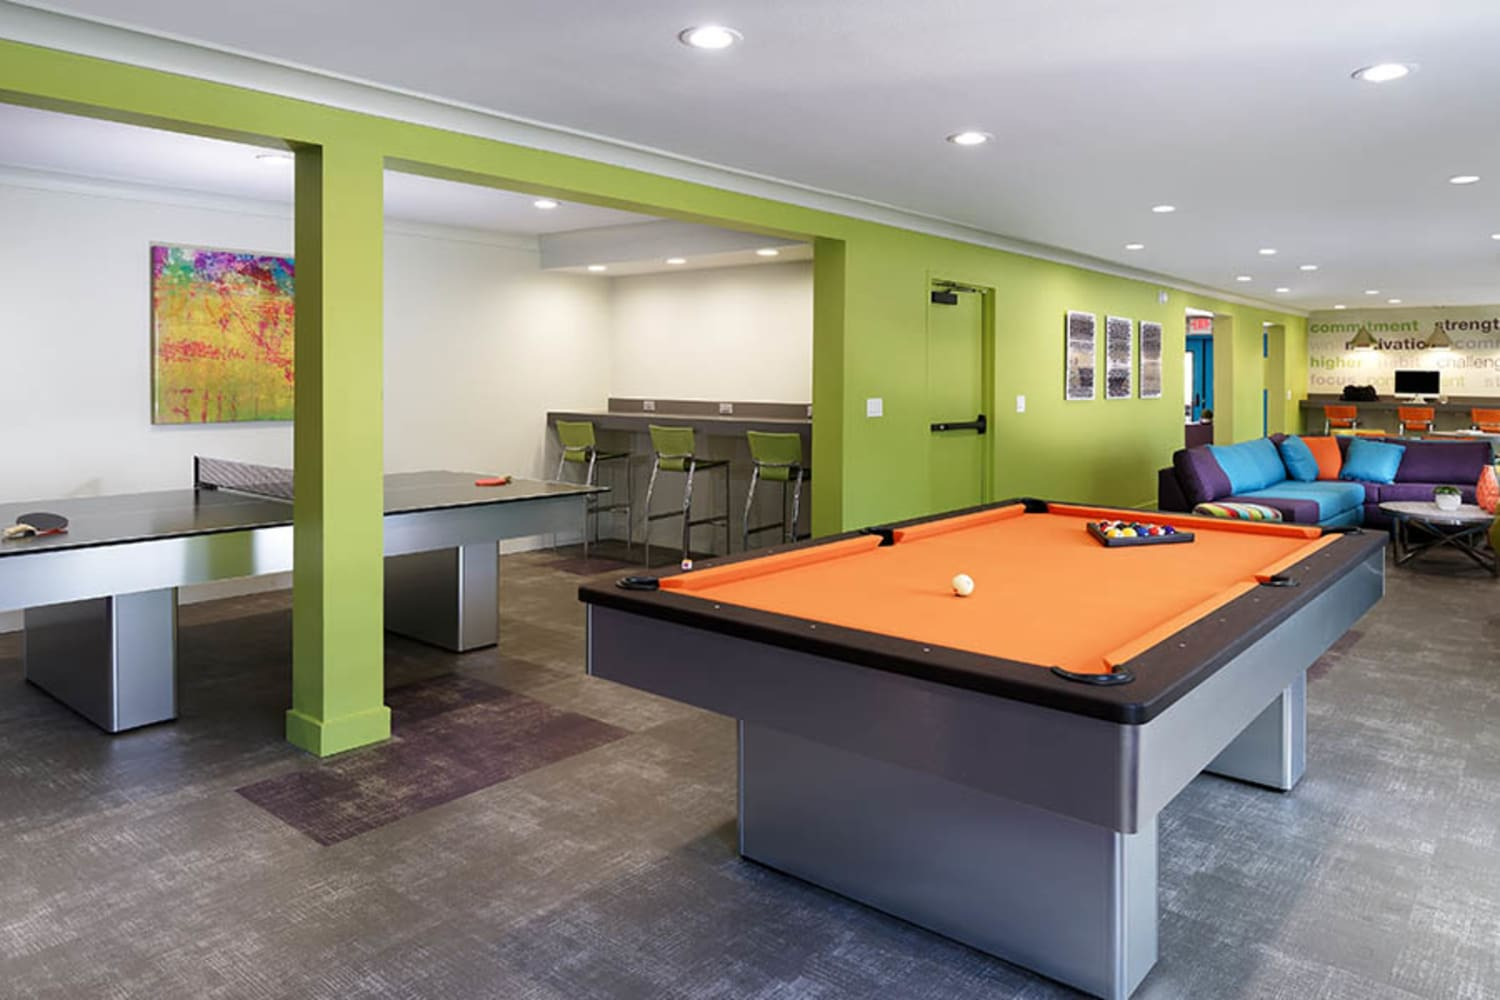 UCA Apartment Homes in Fullerton, California, offer a clubhouse with a pool table